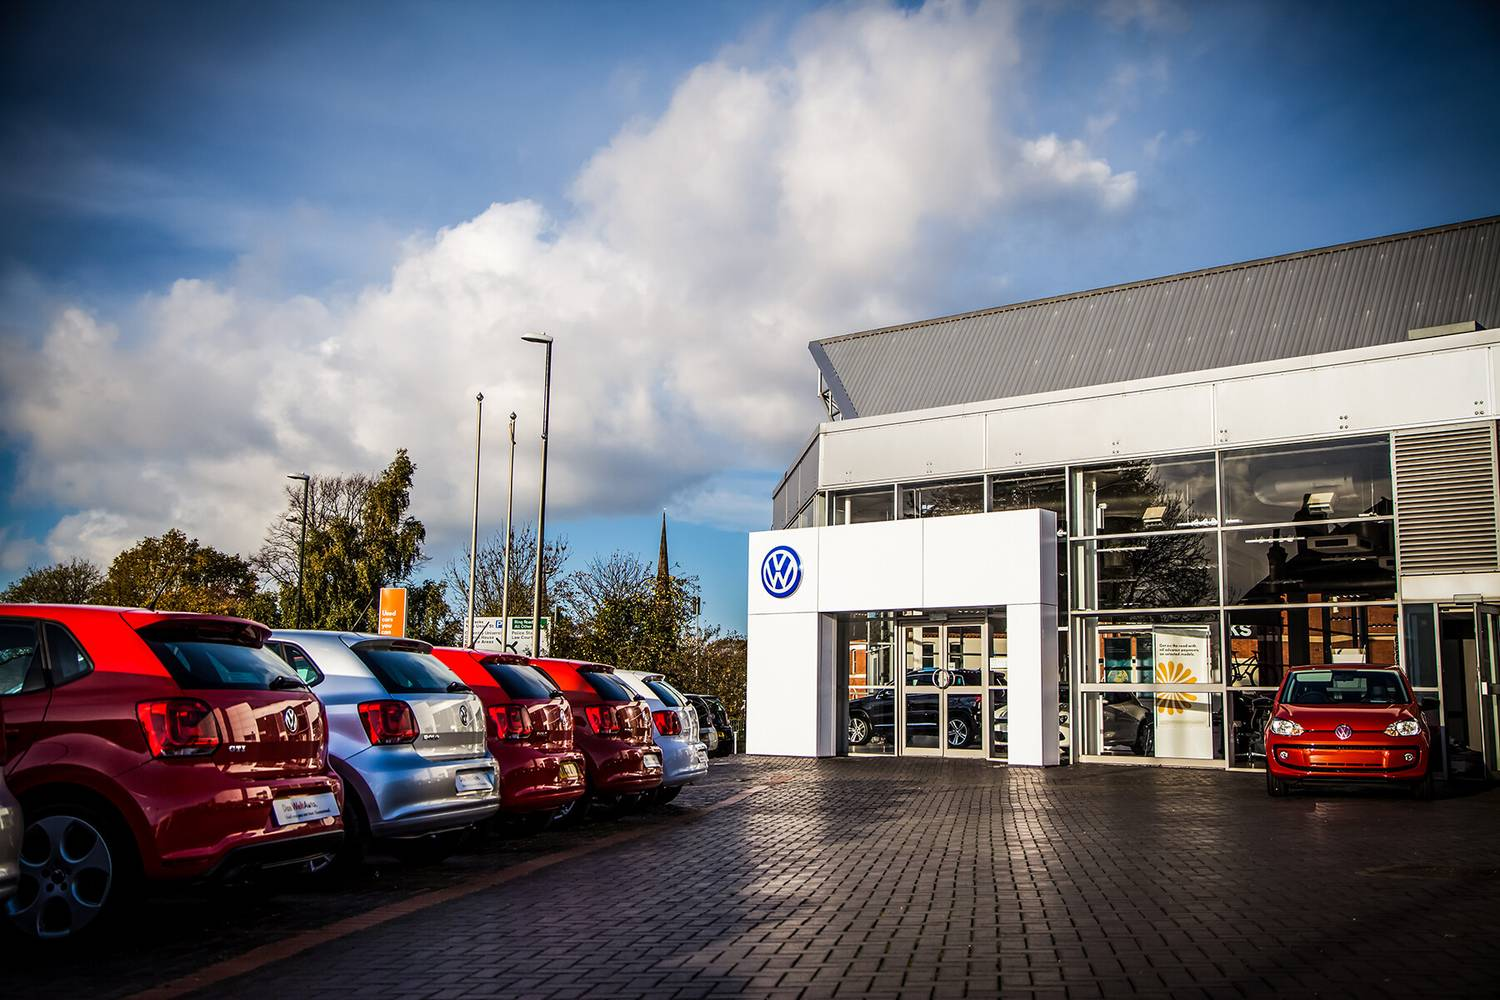 Vw Specialist Near Me >> Listers Volkswagen Coventry Vw Servicing Coventry Vw